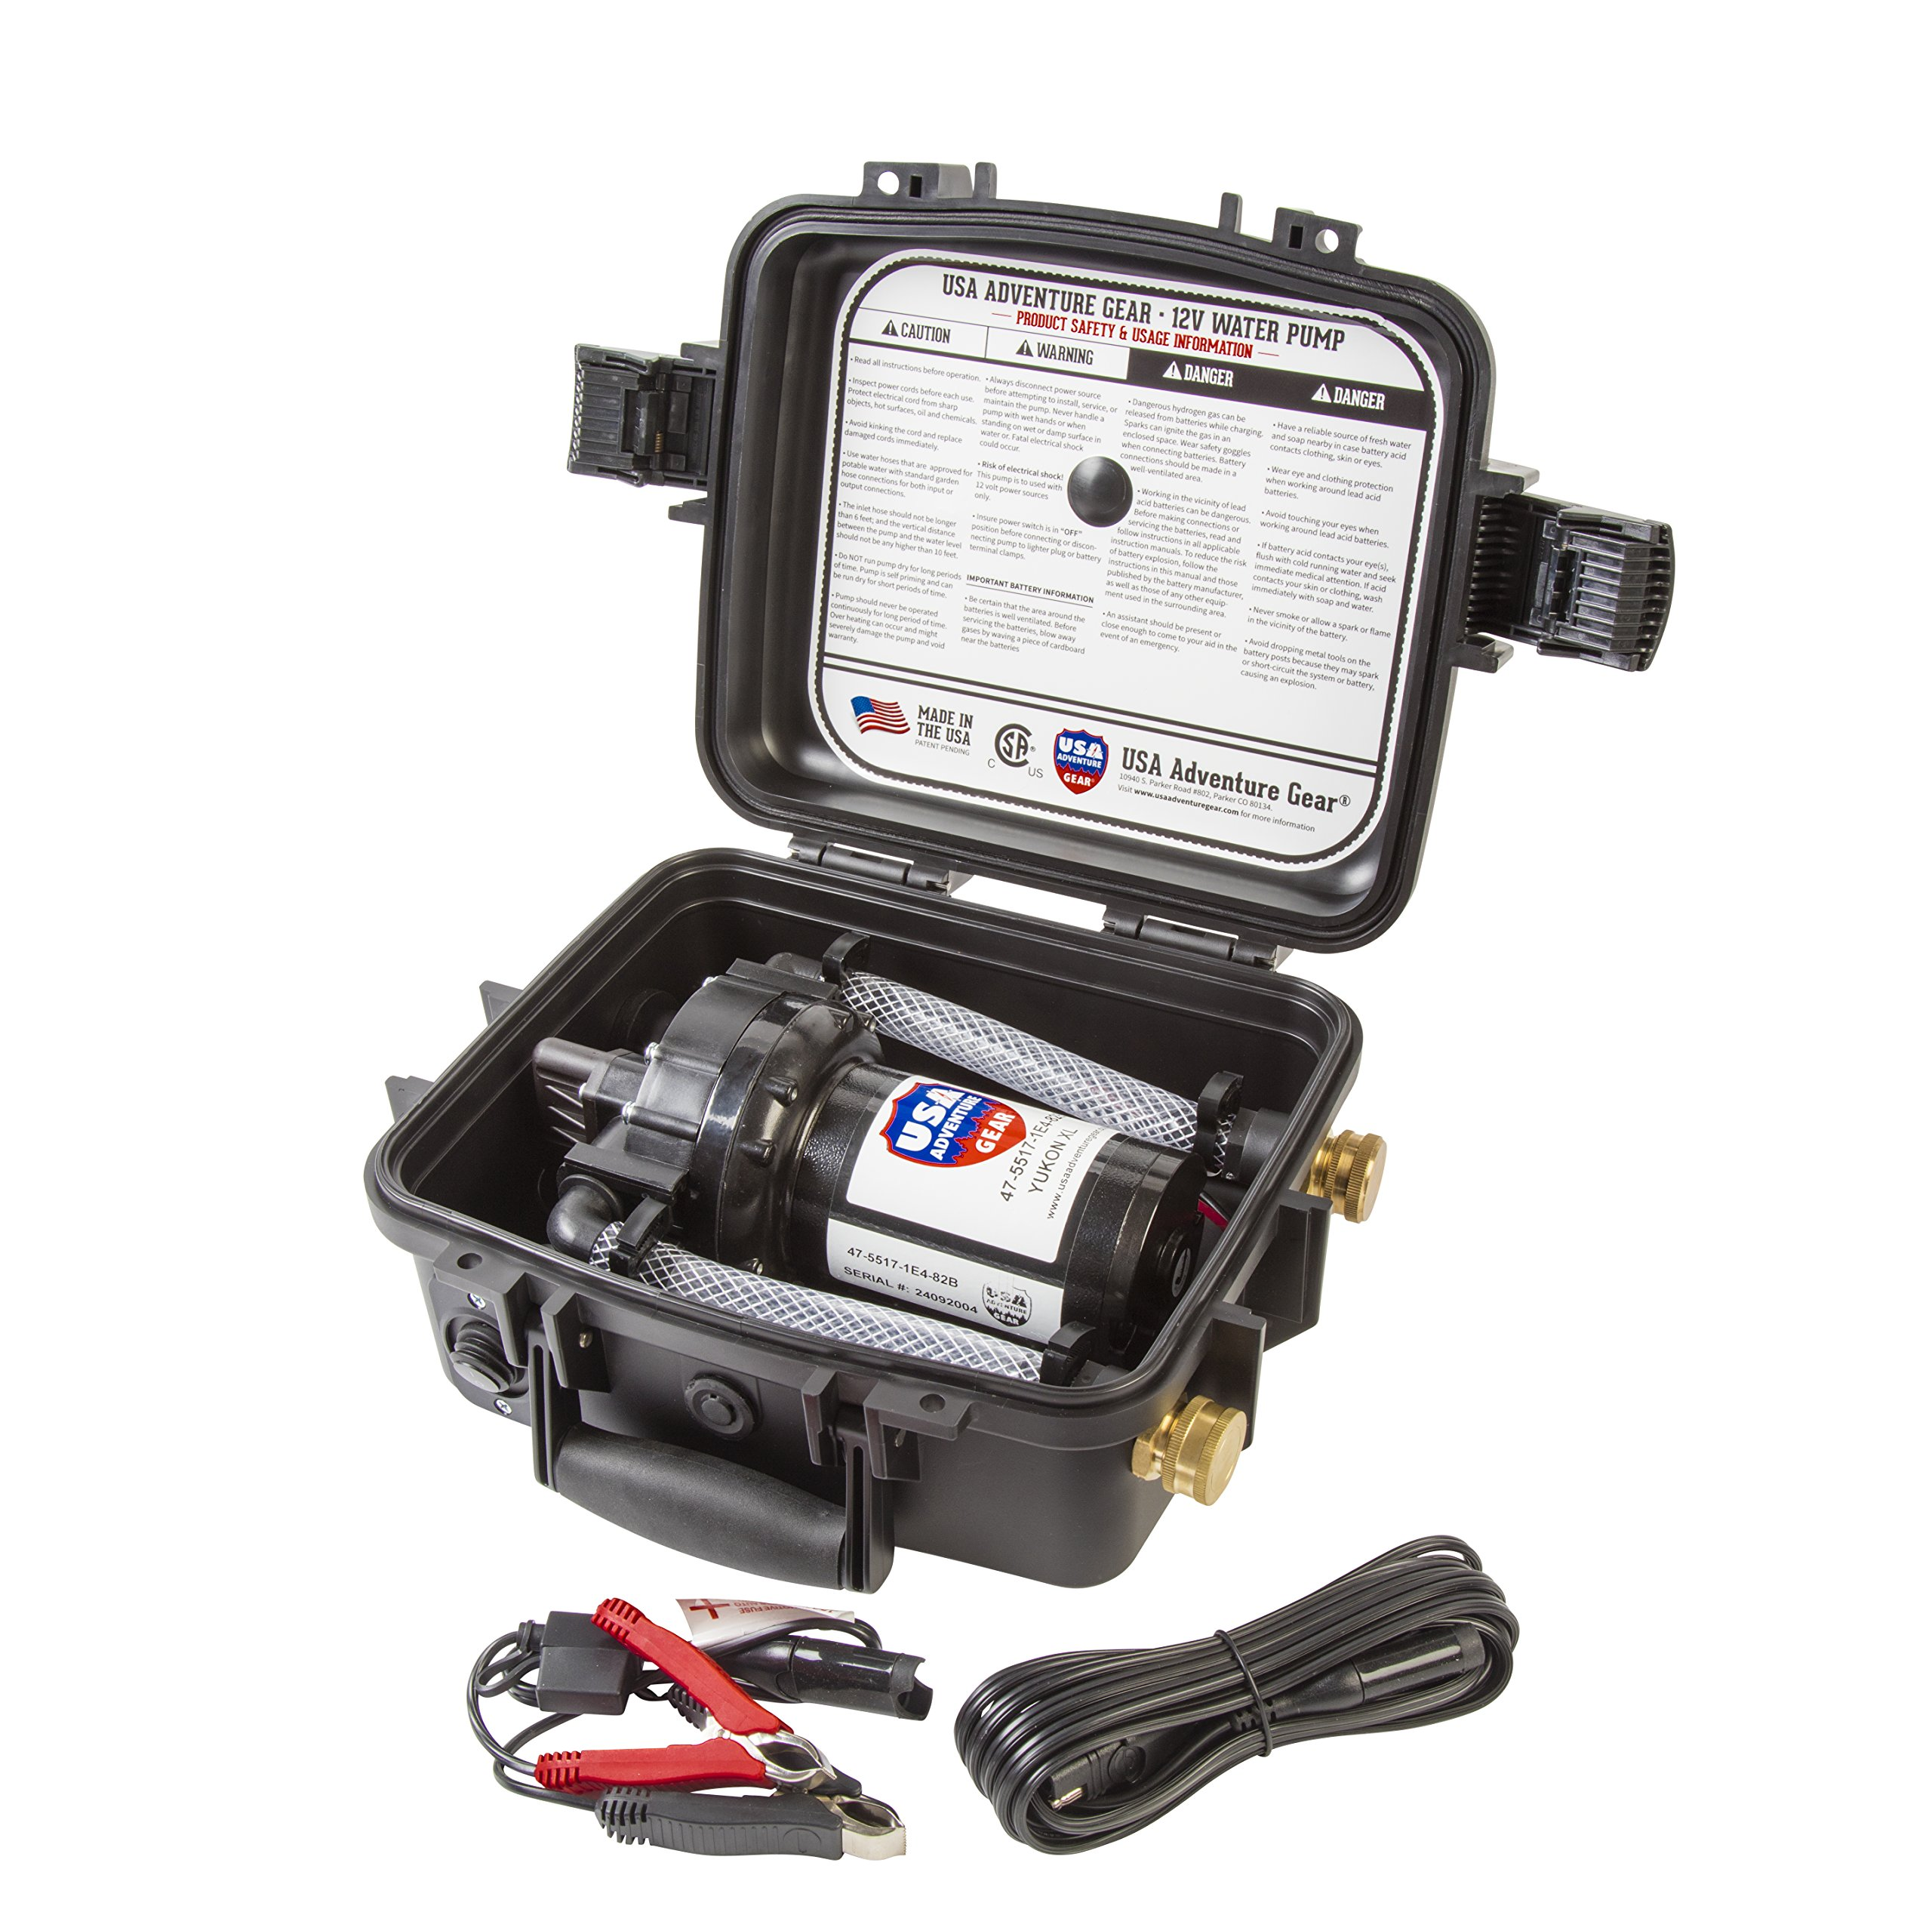 Yukon XL 12 Volt DC 5GPM Portable Water Pump Featuring USA's 5500 Progear Professional Grade Pump | Made in The USA | Self-Priming | Marine, RV, Agriculture and Recreational Applications by USA Adventure Gear